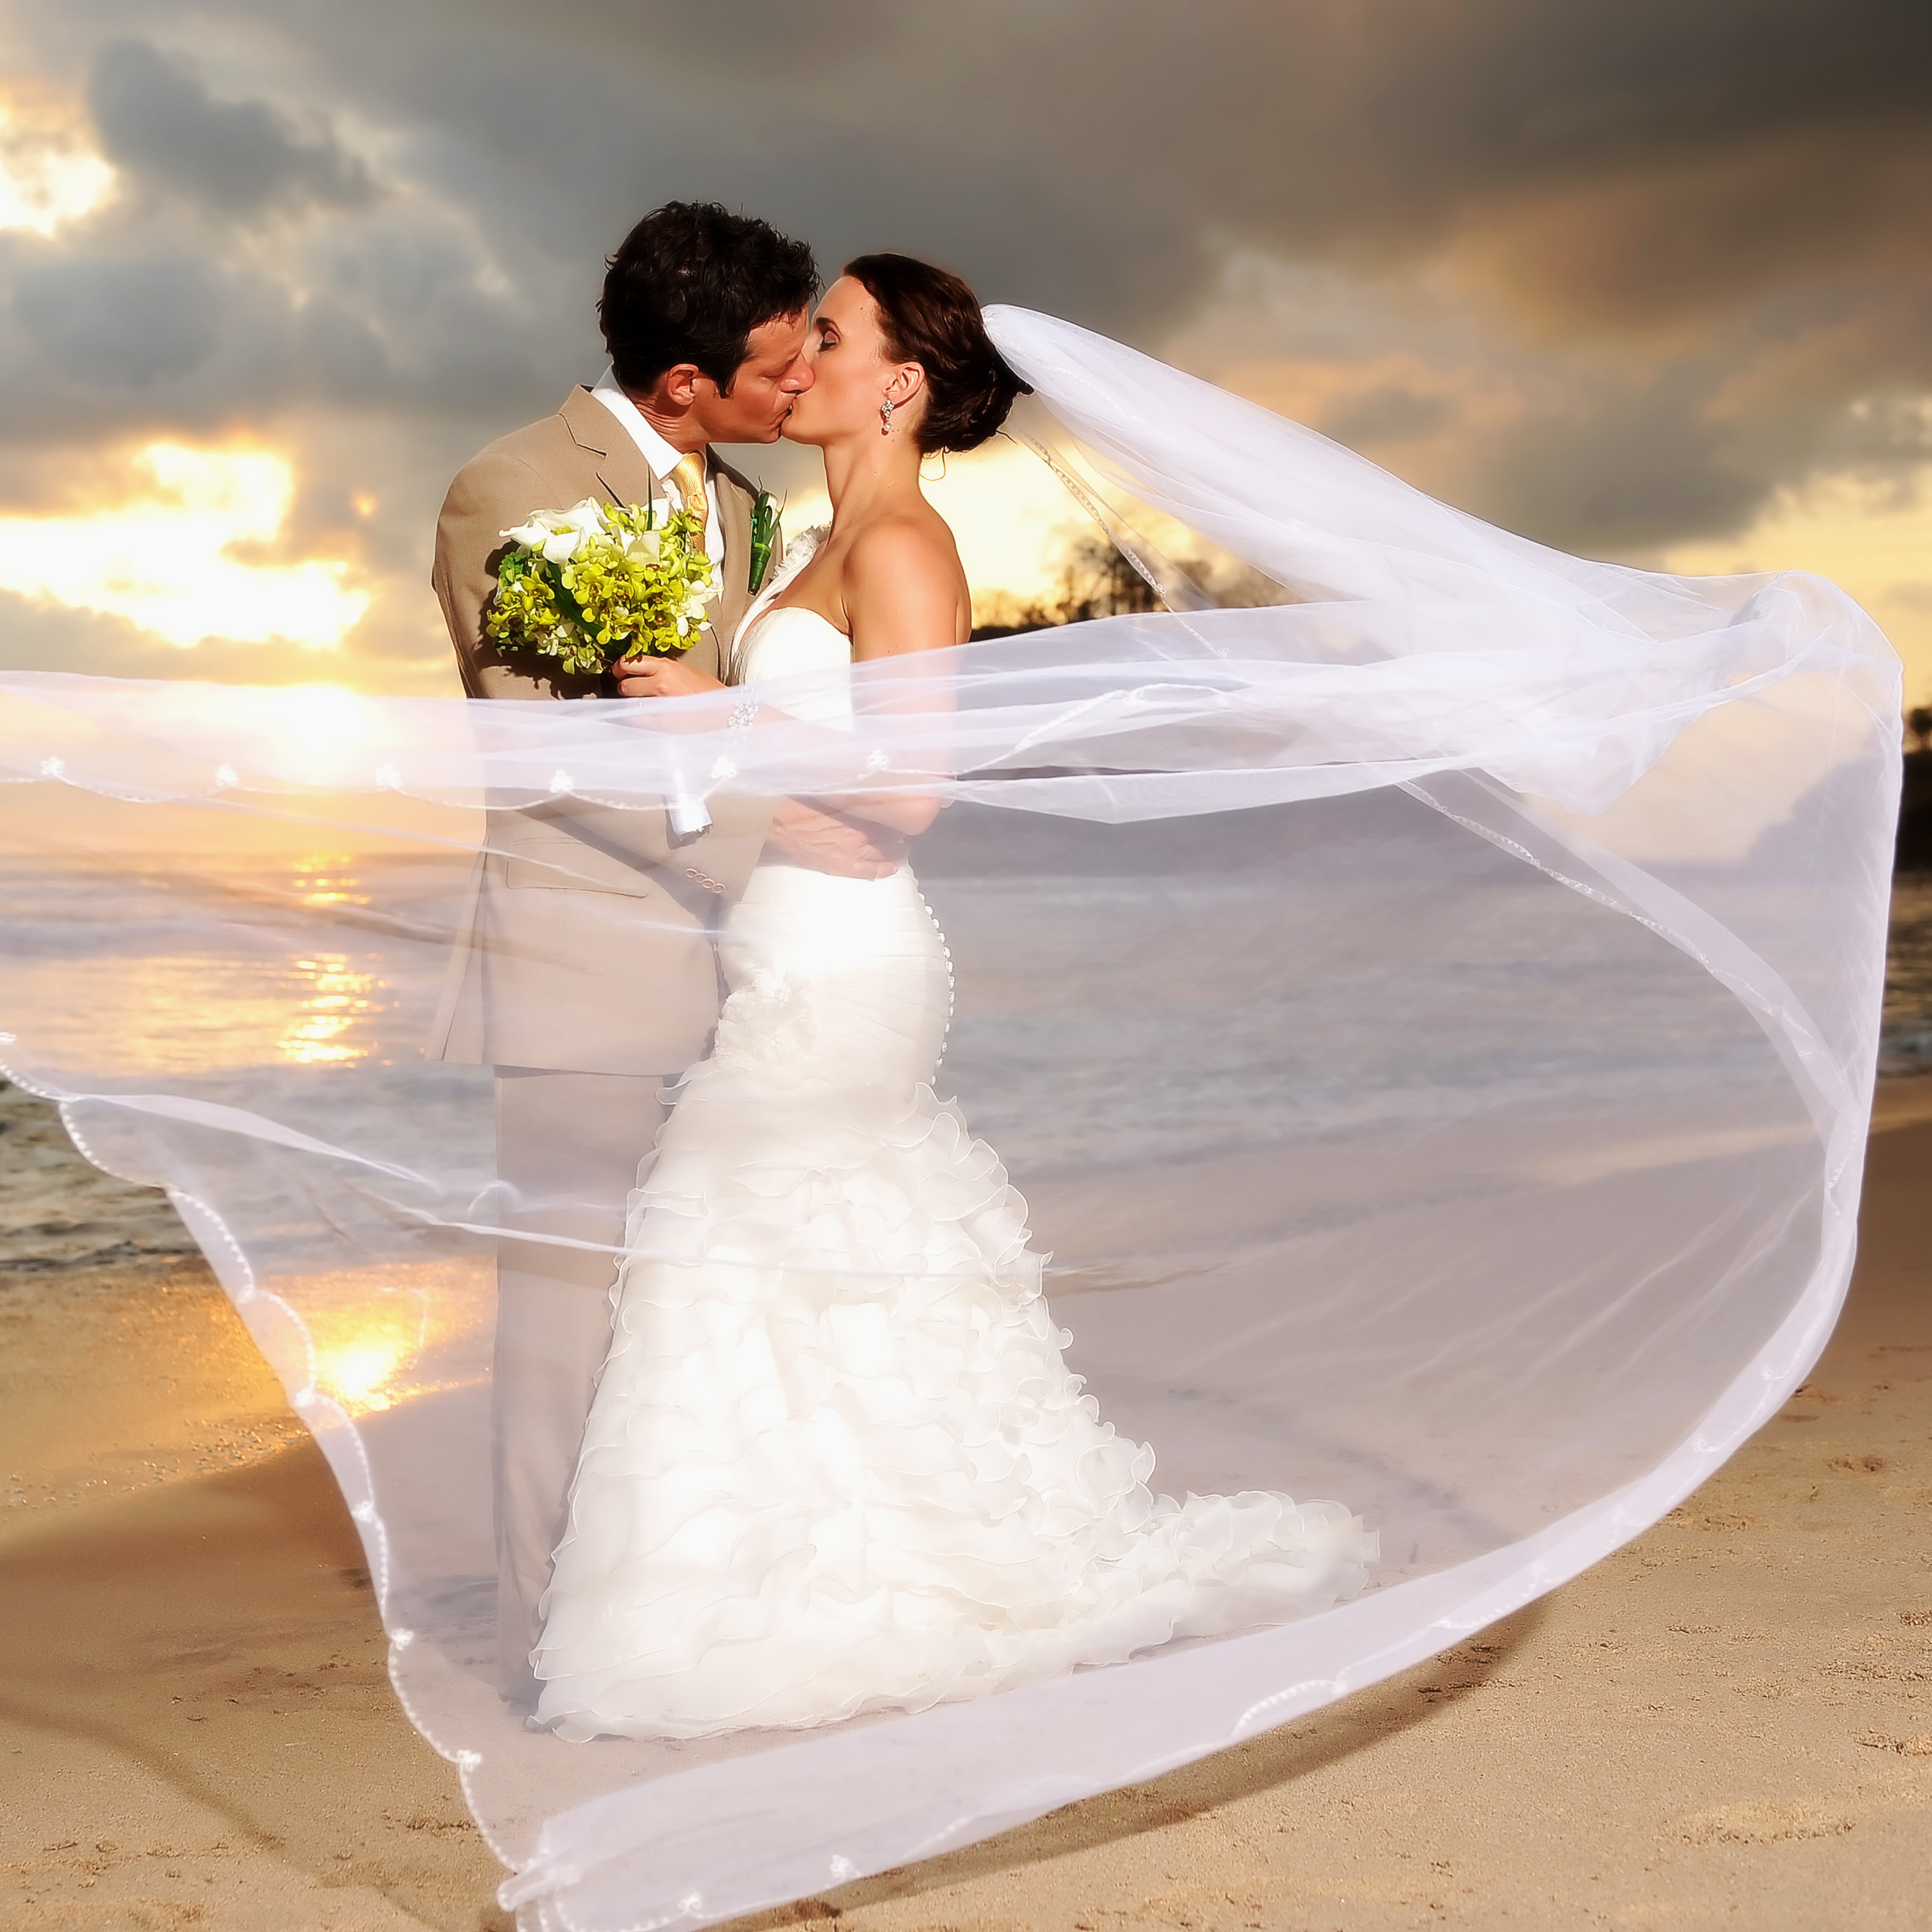 Plan Your Costa Rica Wedding With Expert Eliot Greenspan. Wedding Dress Shops Twin Cities. Affordable Wedding Photography Uk. Wedding Invitations Under 2.00 Each. Wedding Invitation Wording Date And Time. Wedding Catering In Ct. Wedding Location Photography. Wedding Consultant Forms. Wedding Decor Using Wine Bottles